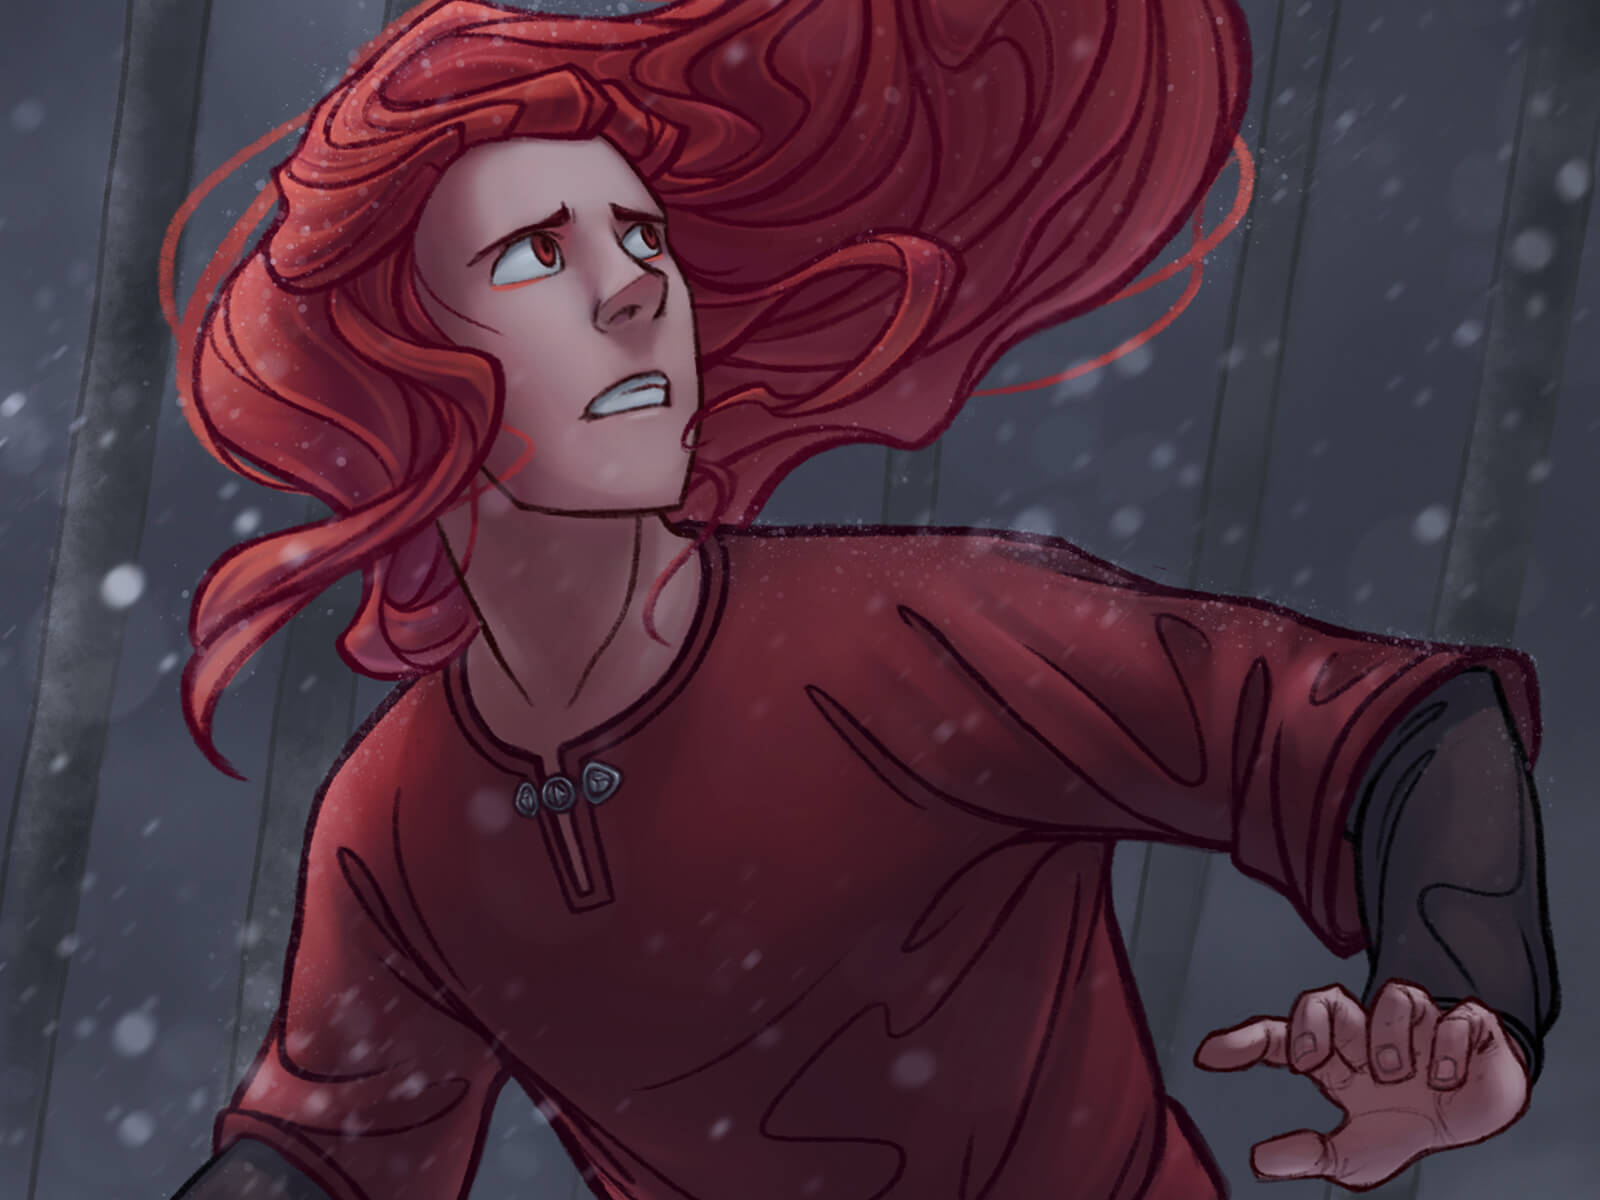 A man with long red hair in a red tunic looks worriedly over his shoulder in a snowy environment.